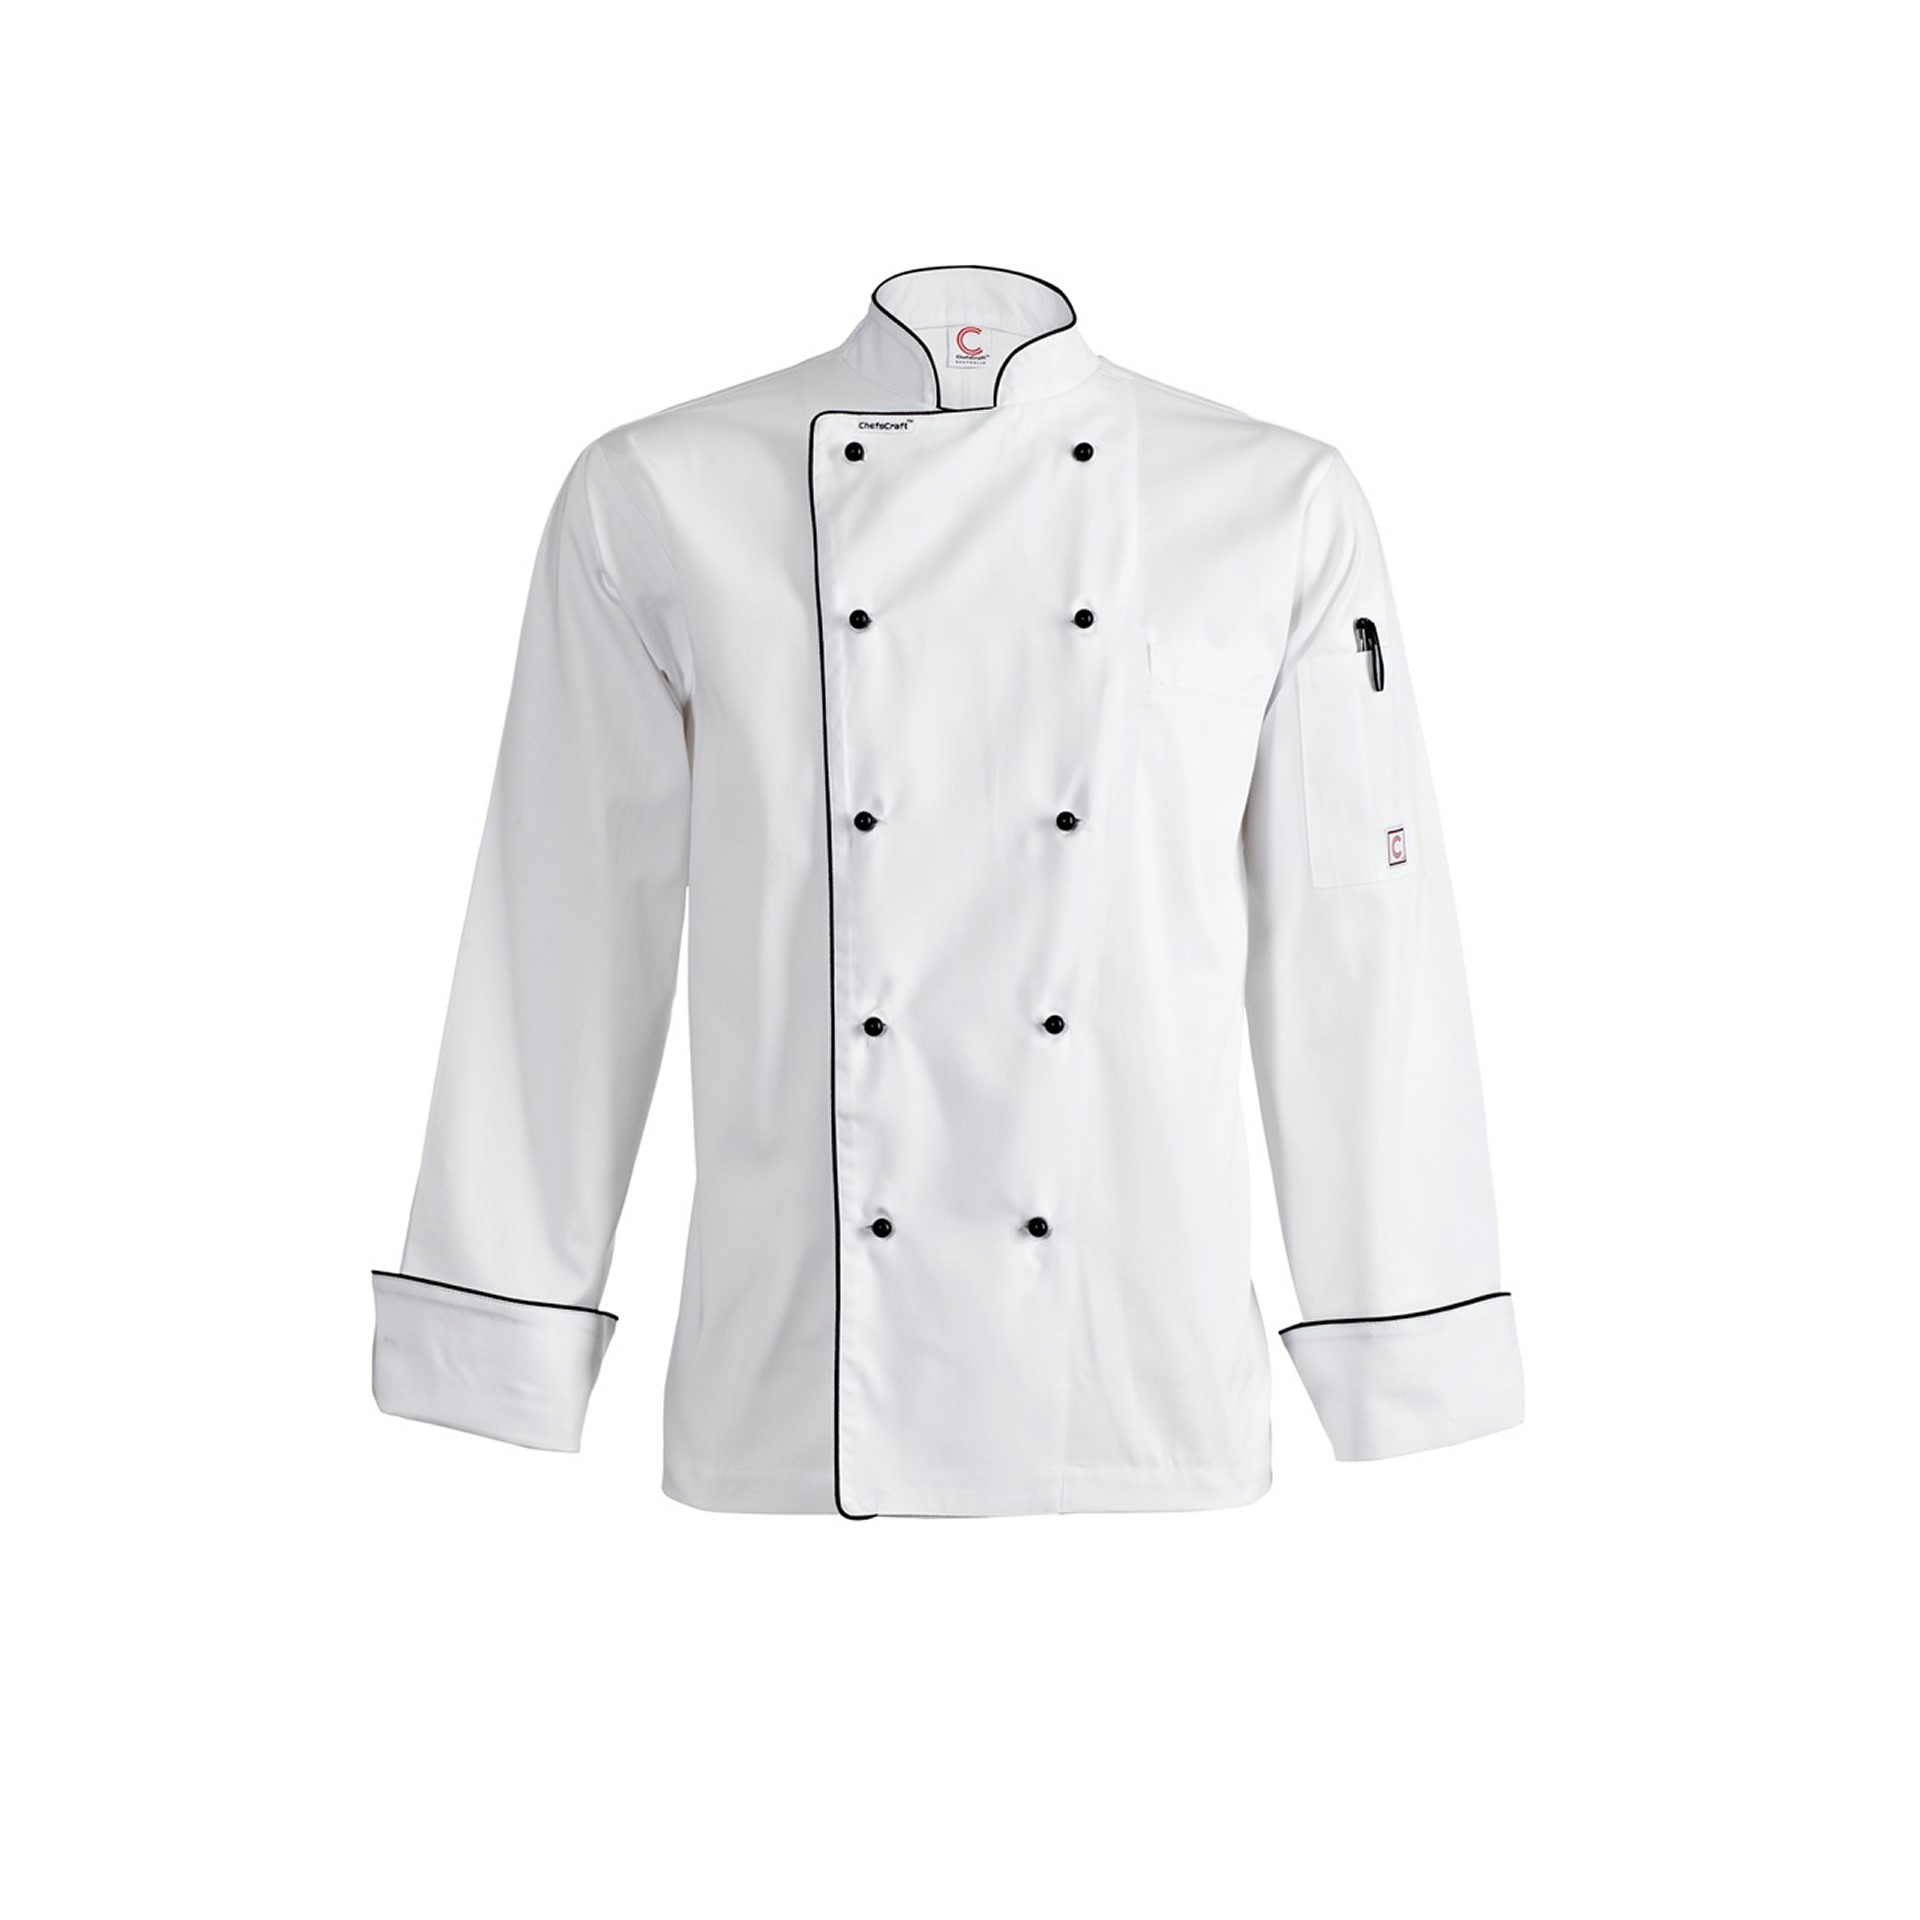 Chefscraft Executive Chefs Jacket with Piping - Long Sleeve